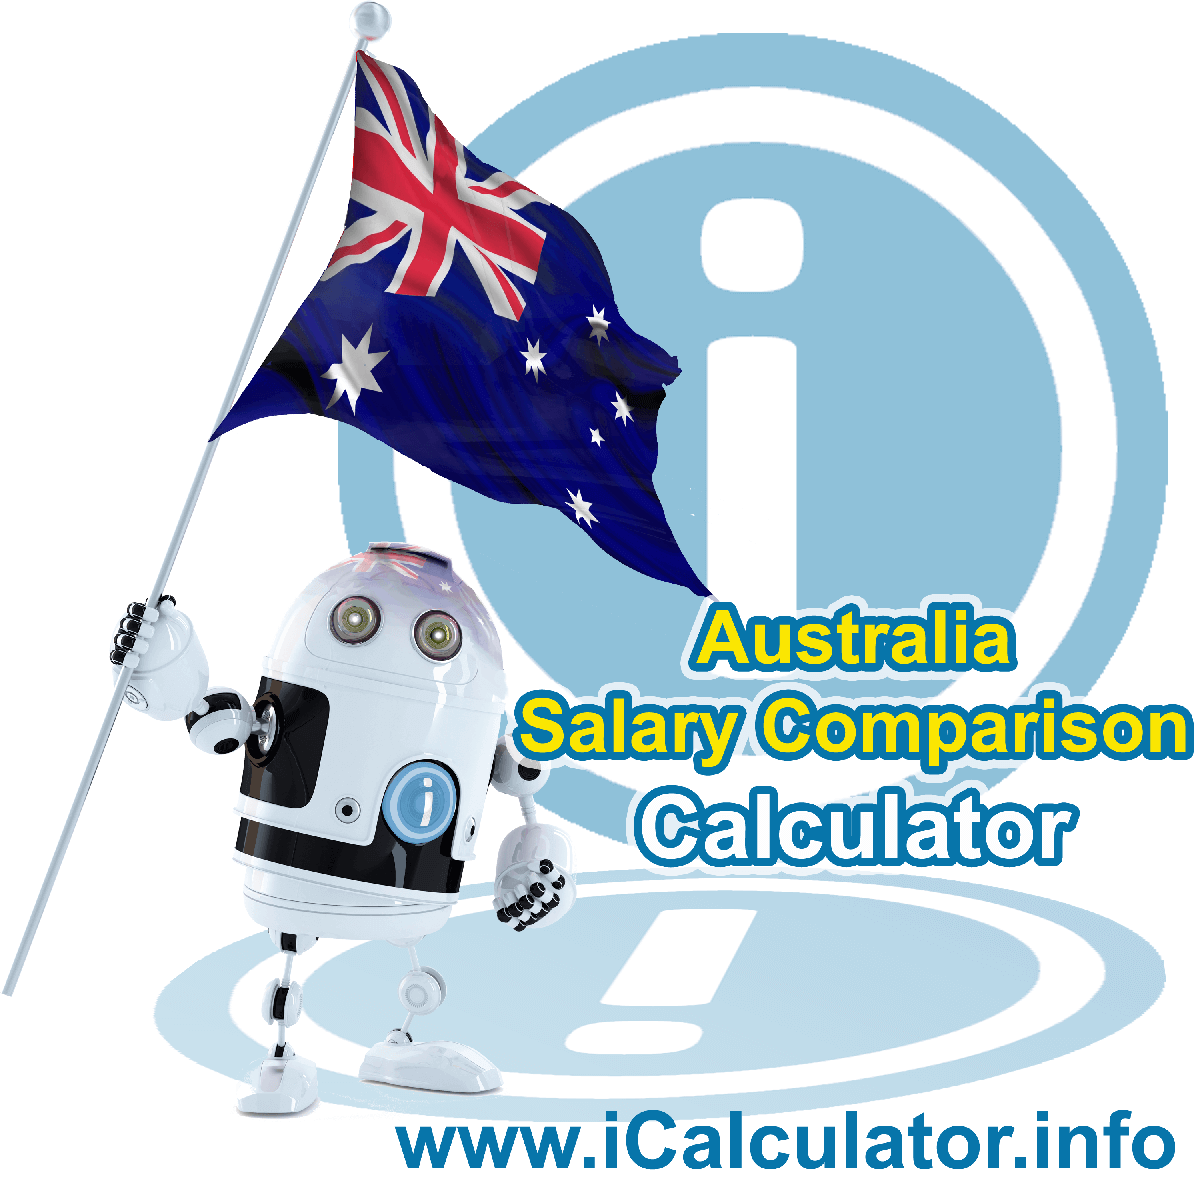 Australia Annual Salary Comparison Calculator. This image shows the Australia flag and information relating to the income tax formula for the Australia Annual Salary Comparison Calculator